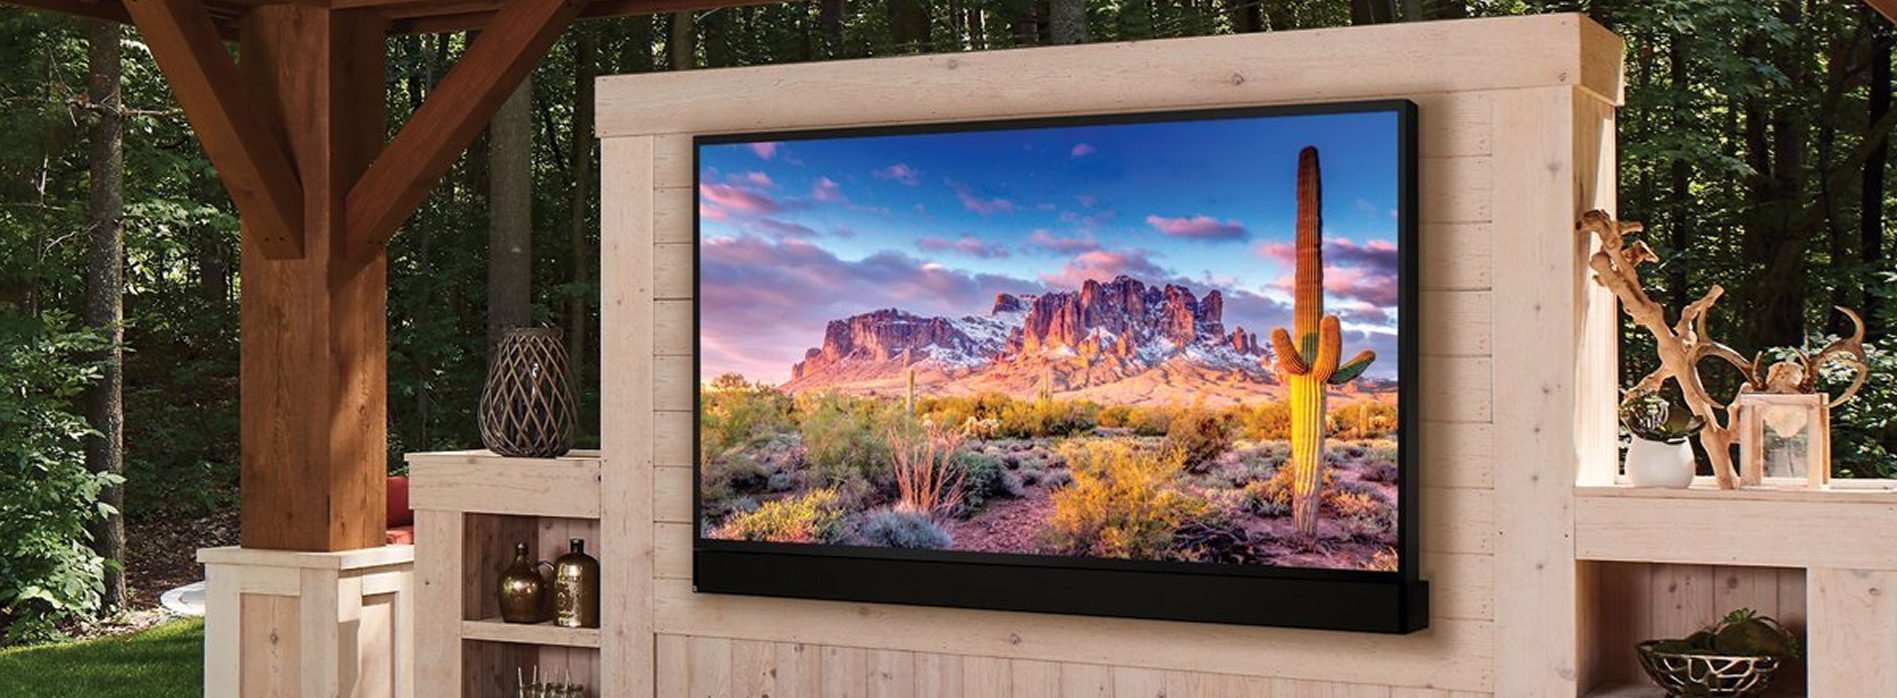 Outdoor Theater TV Installation NJ